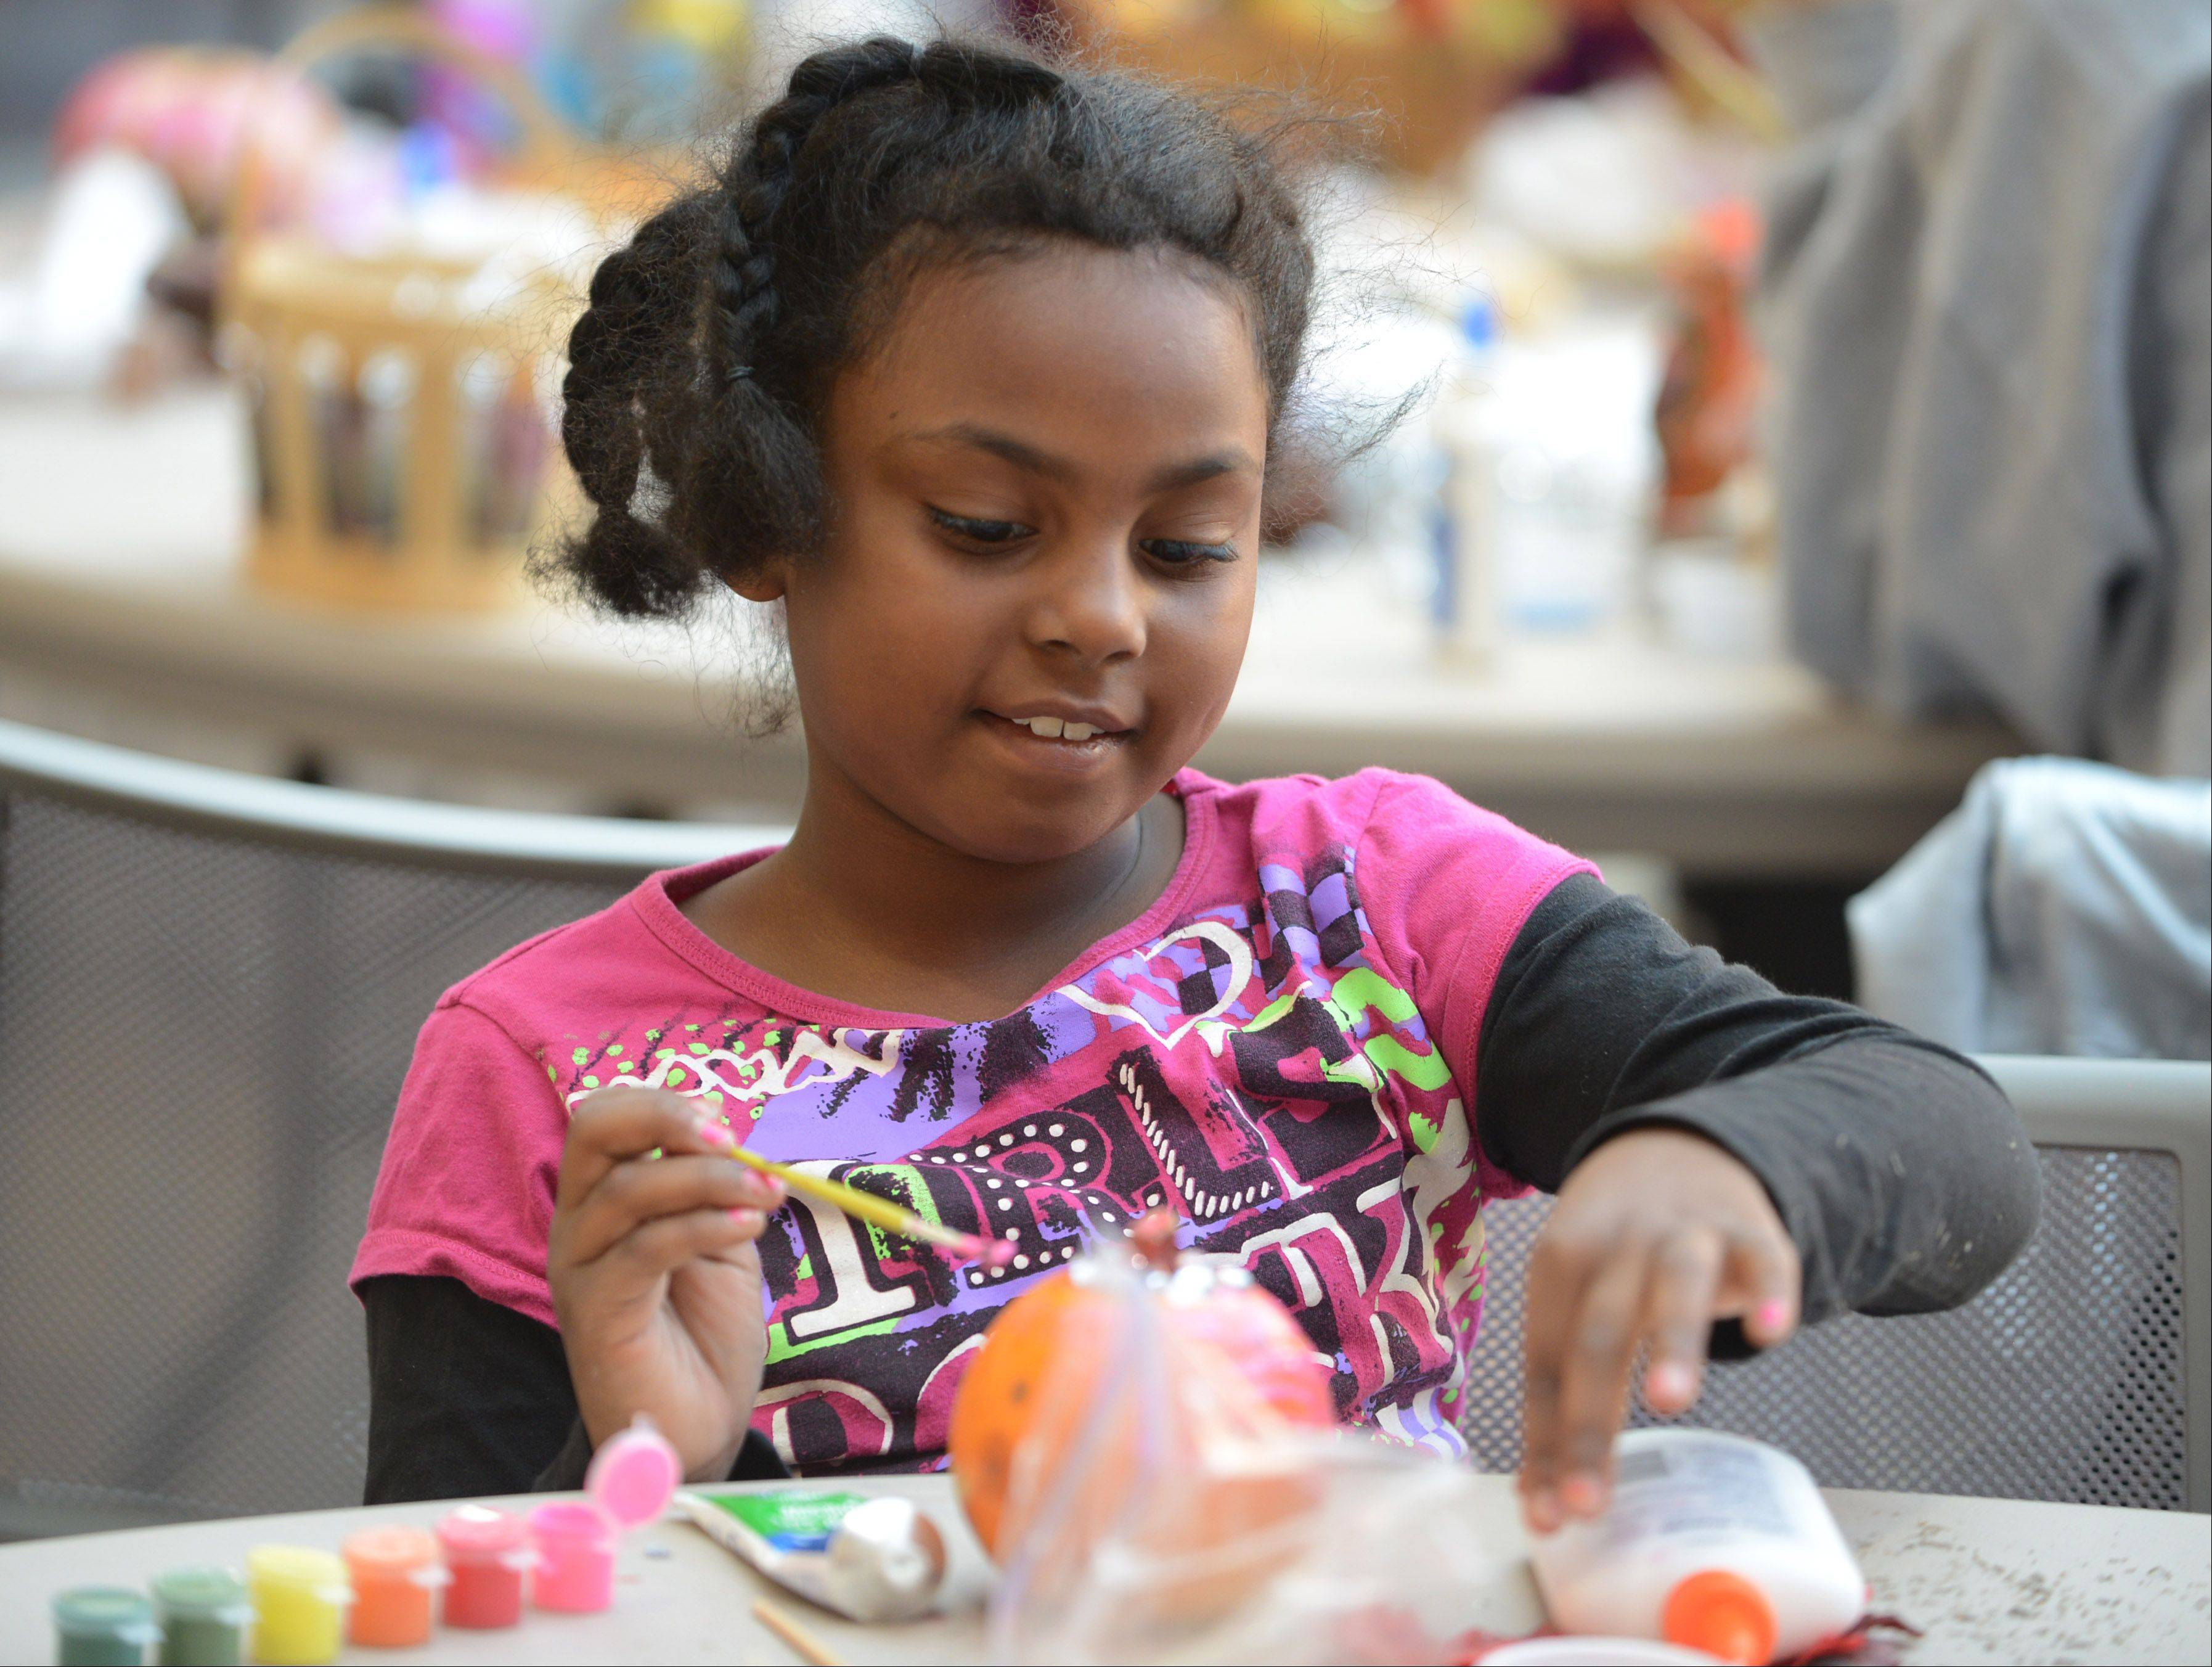 Madison Booker, 7, of Round Lake Beach helped make craft items for the College of Lake County Women's Center during Saturday's Make a Difference Day at the college in Grayslake.